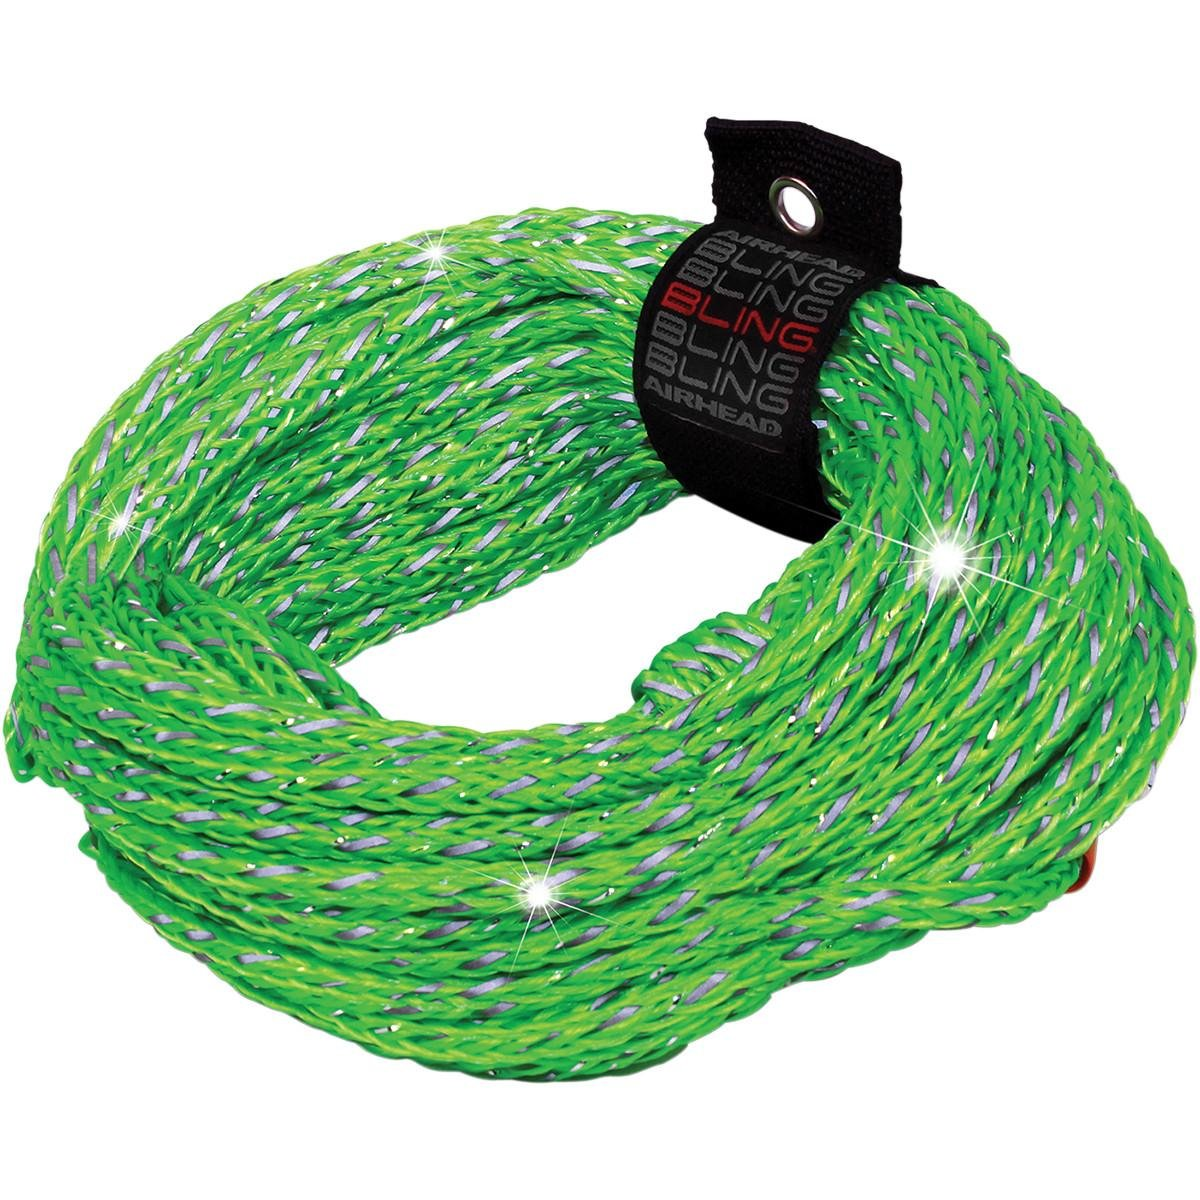 AIRHEAD Bling 2 Rider Tube Rope - 60' by AIRHEAD Watersports